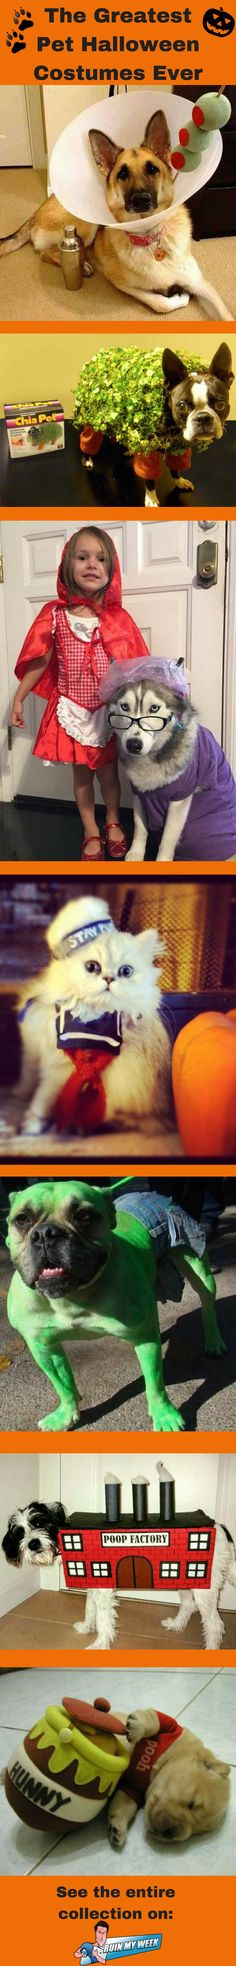 The Greatest Pet Halloween Costumes of All Time